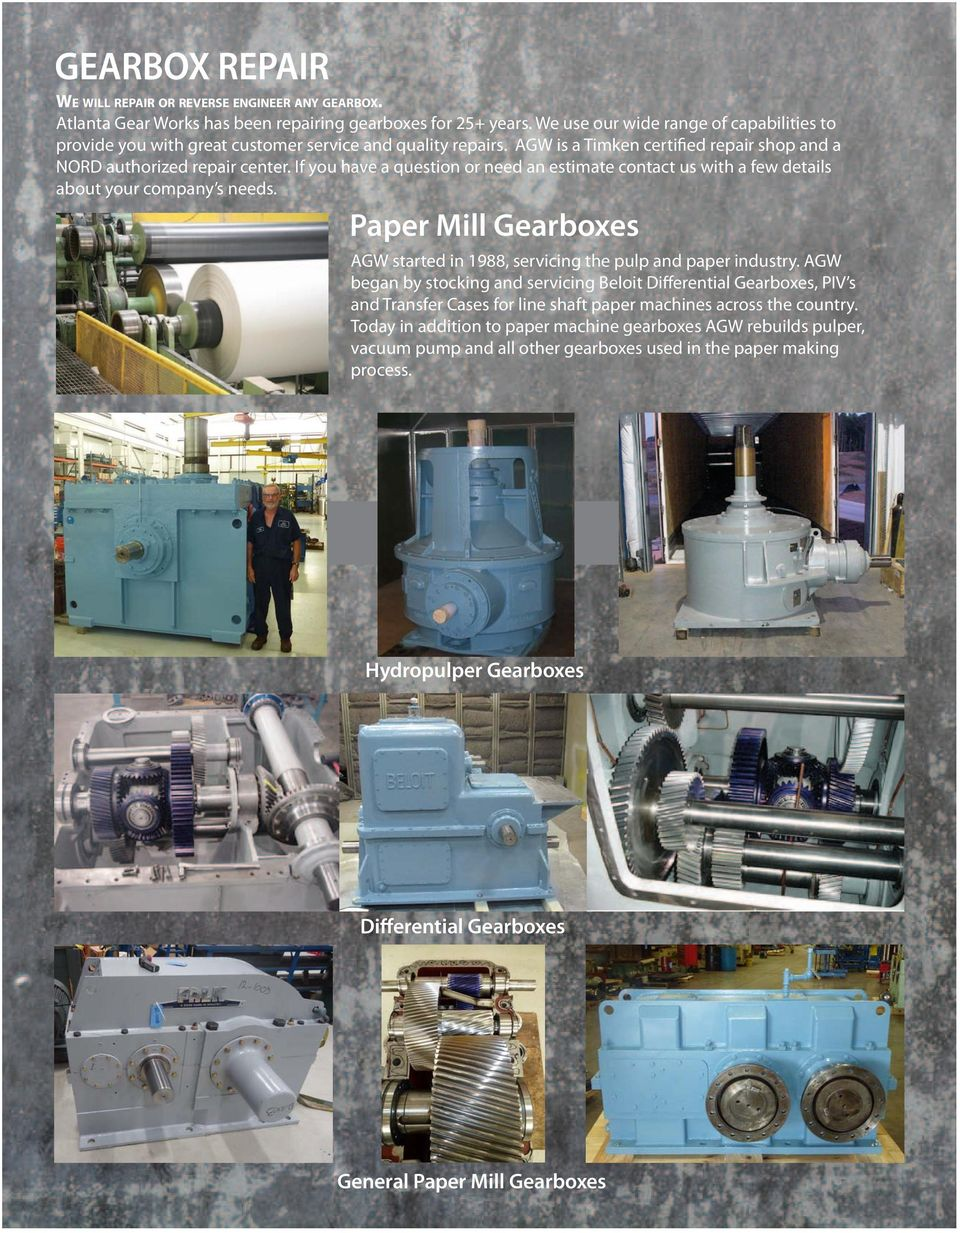 If you have a question or need an estimate contact us with a few details about your company s needs. Paper Mill Gearboxes AGW started in 1988, servicing the pulp and paper industry.